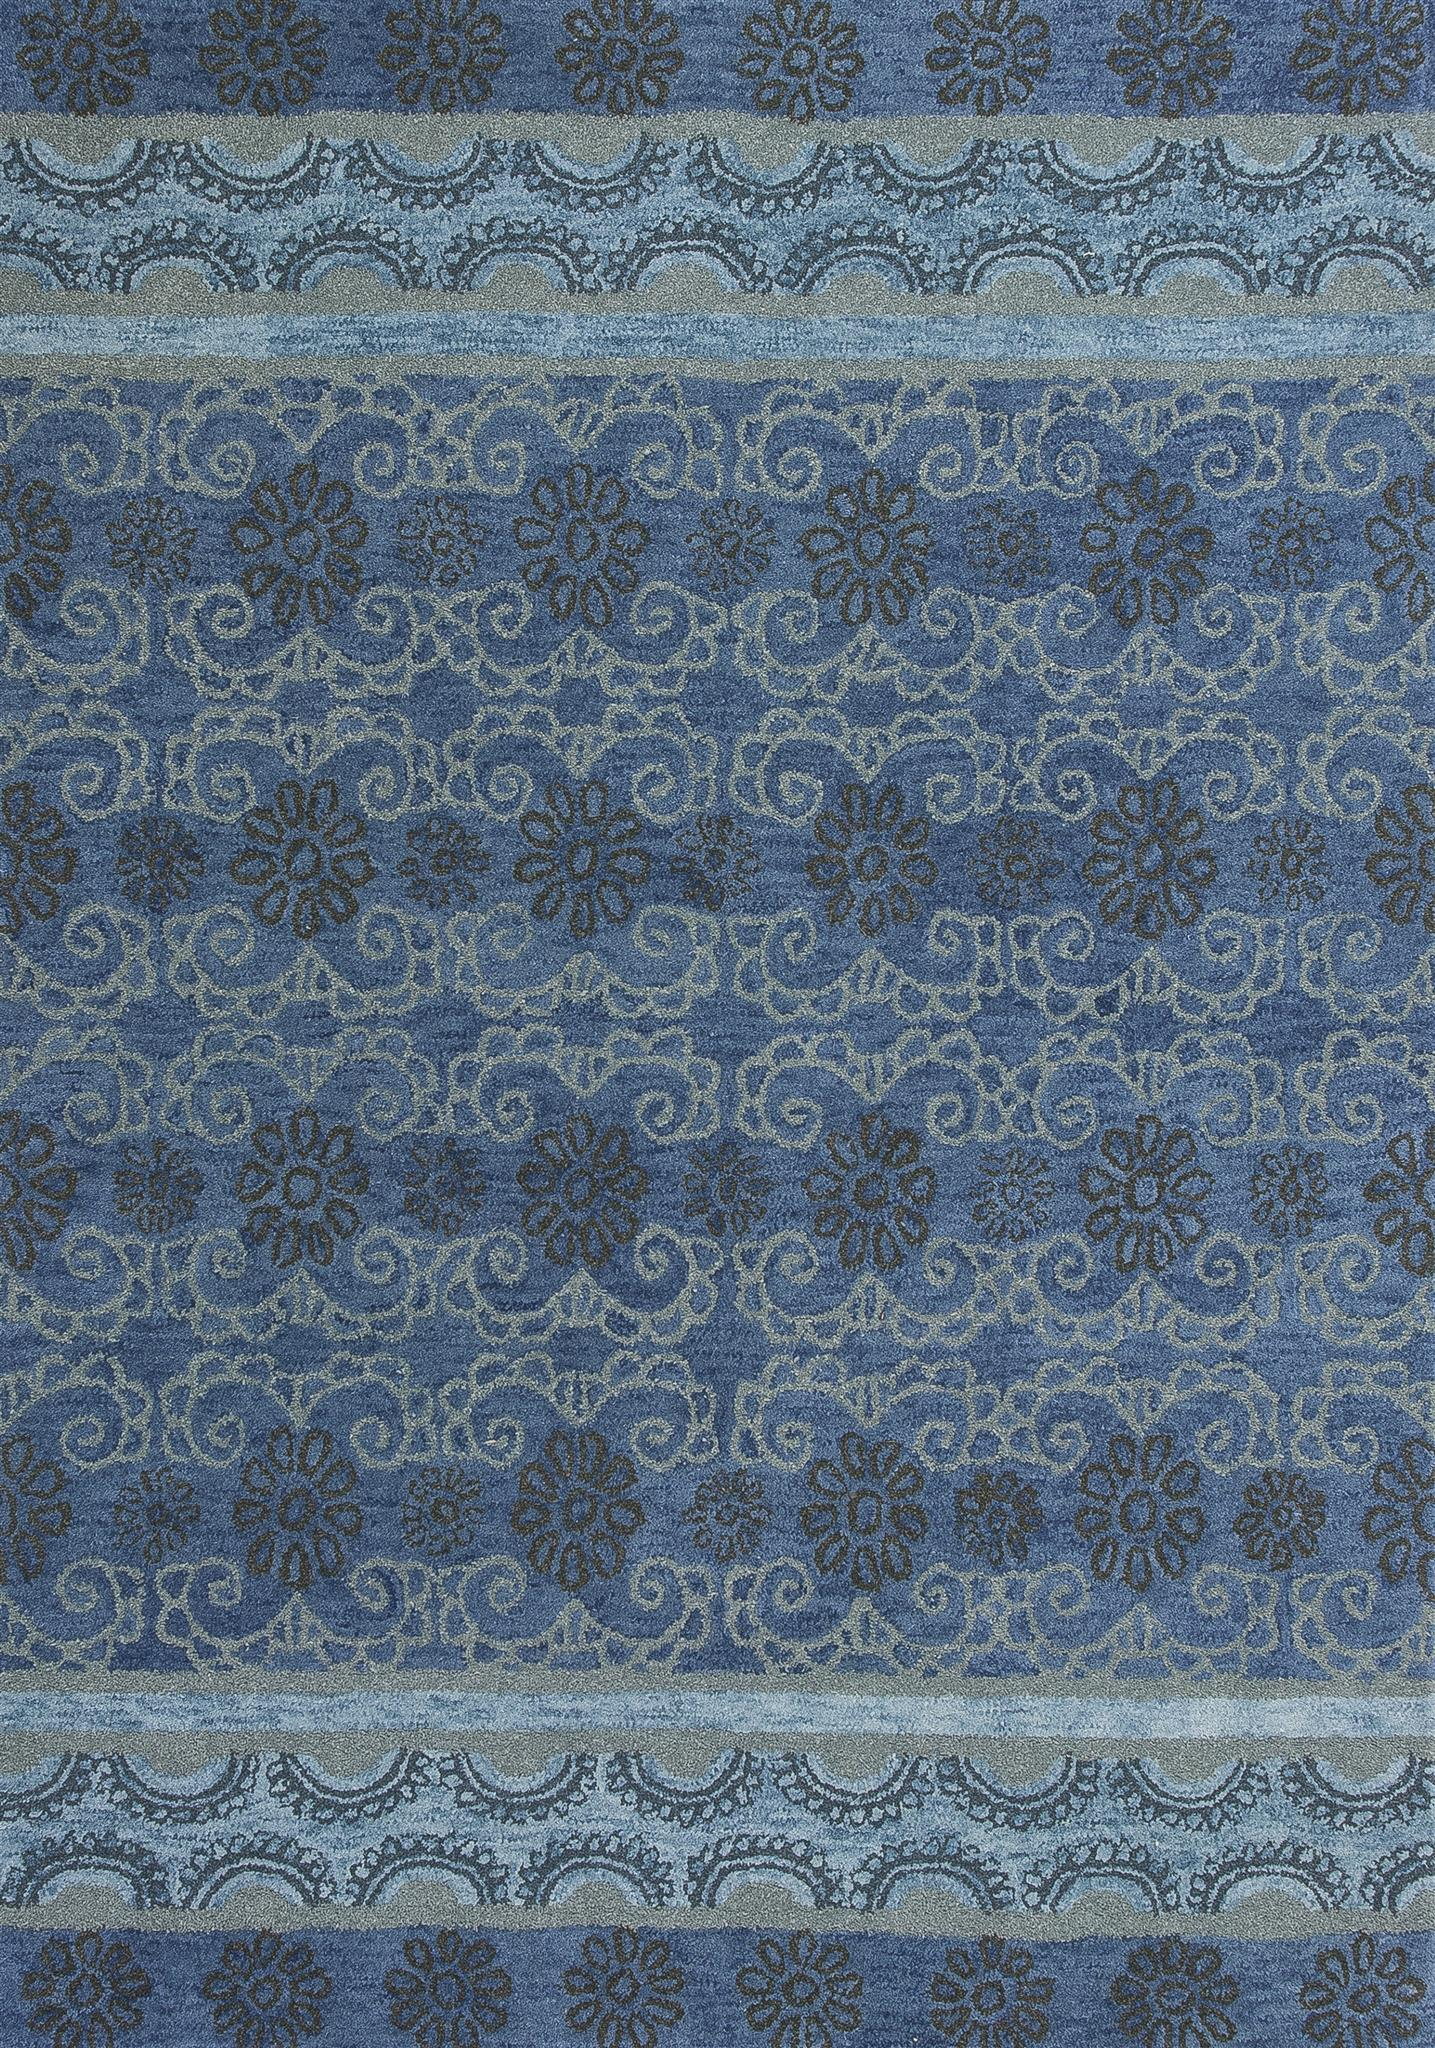 Marrakesh 4514 Blue Celestial